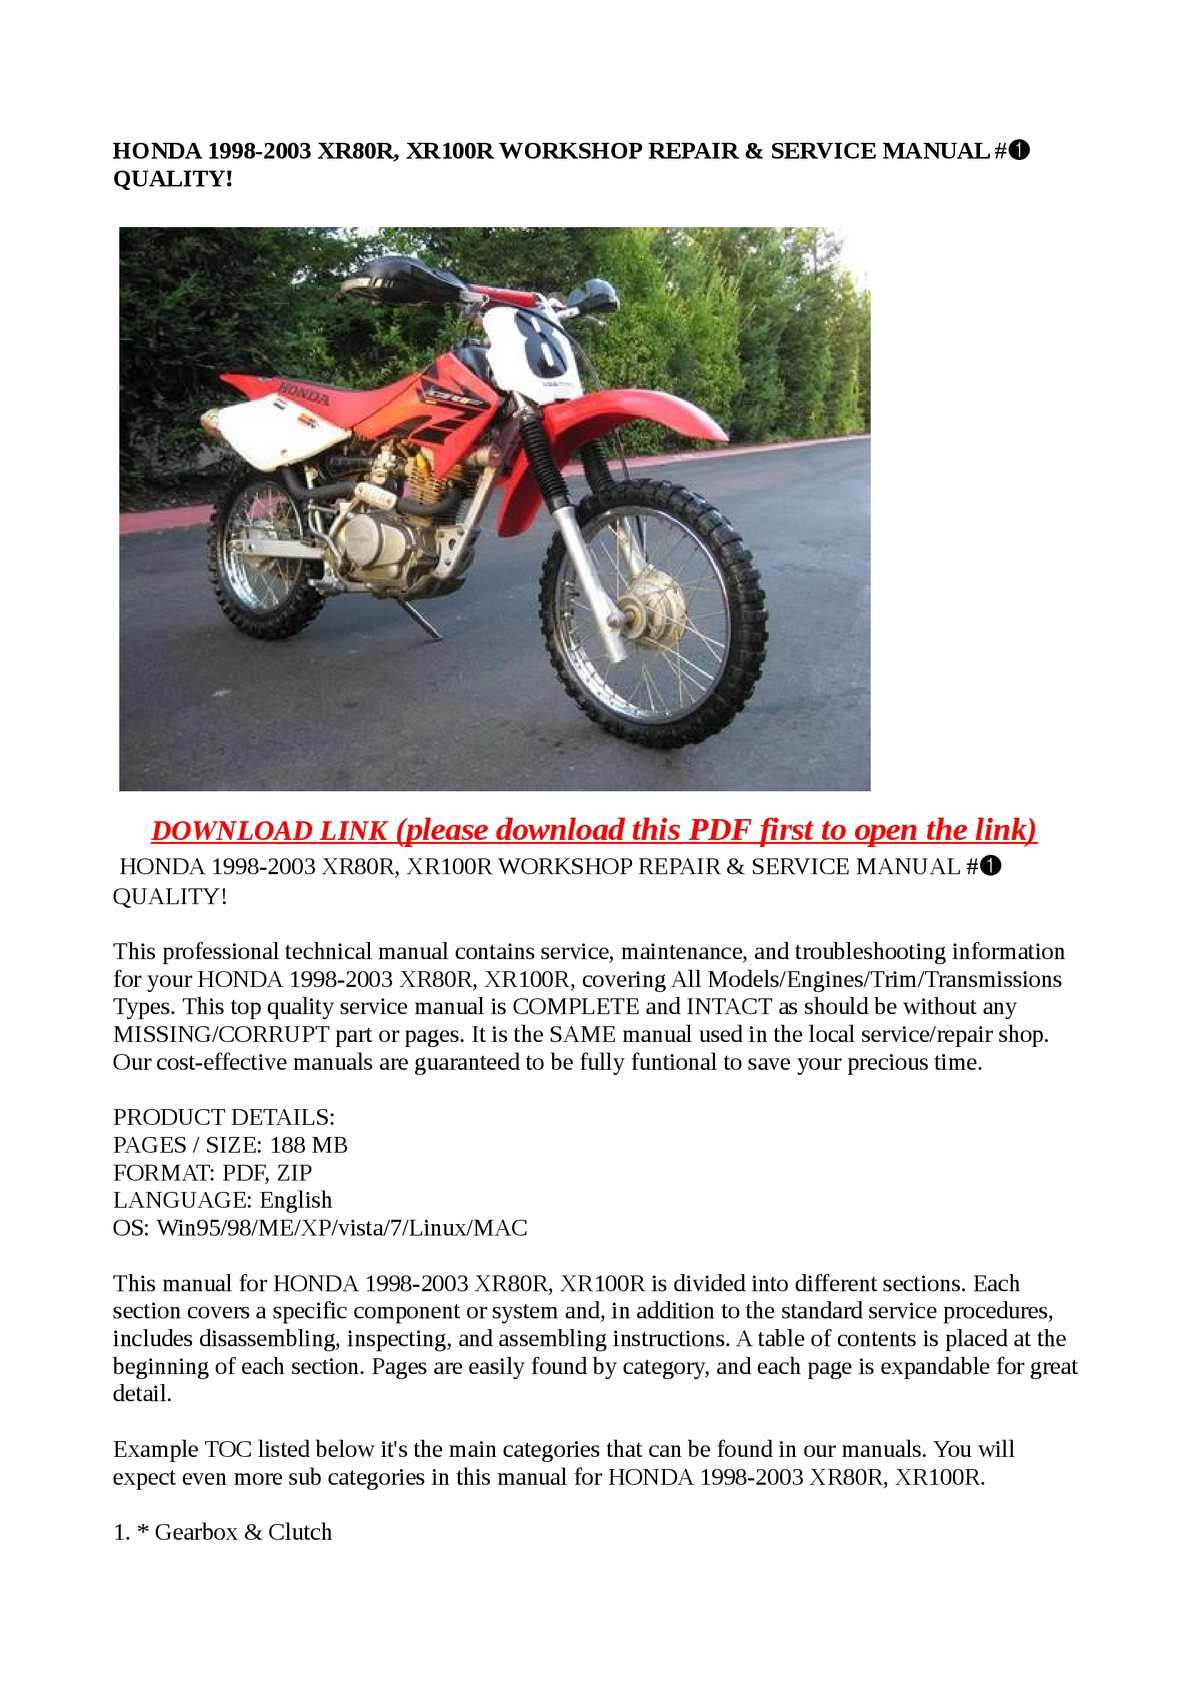 Calaméo - HONDA 1998-2003 XR80R, XR100R WORKSHOP REPAIR & SERVICE MANUAL #➀  QUALITY!